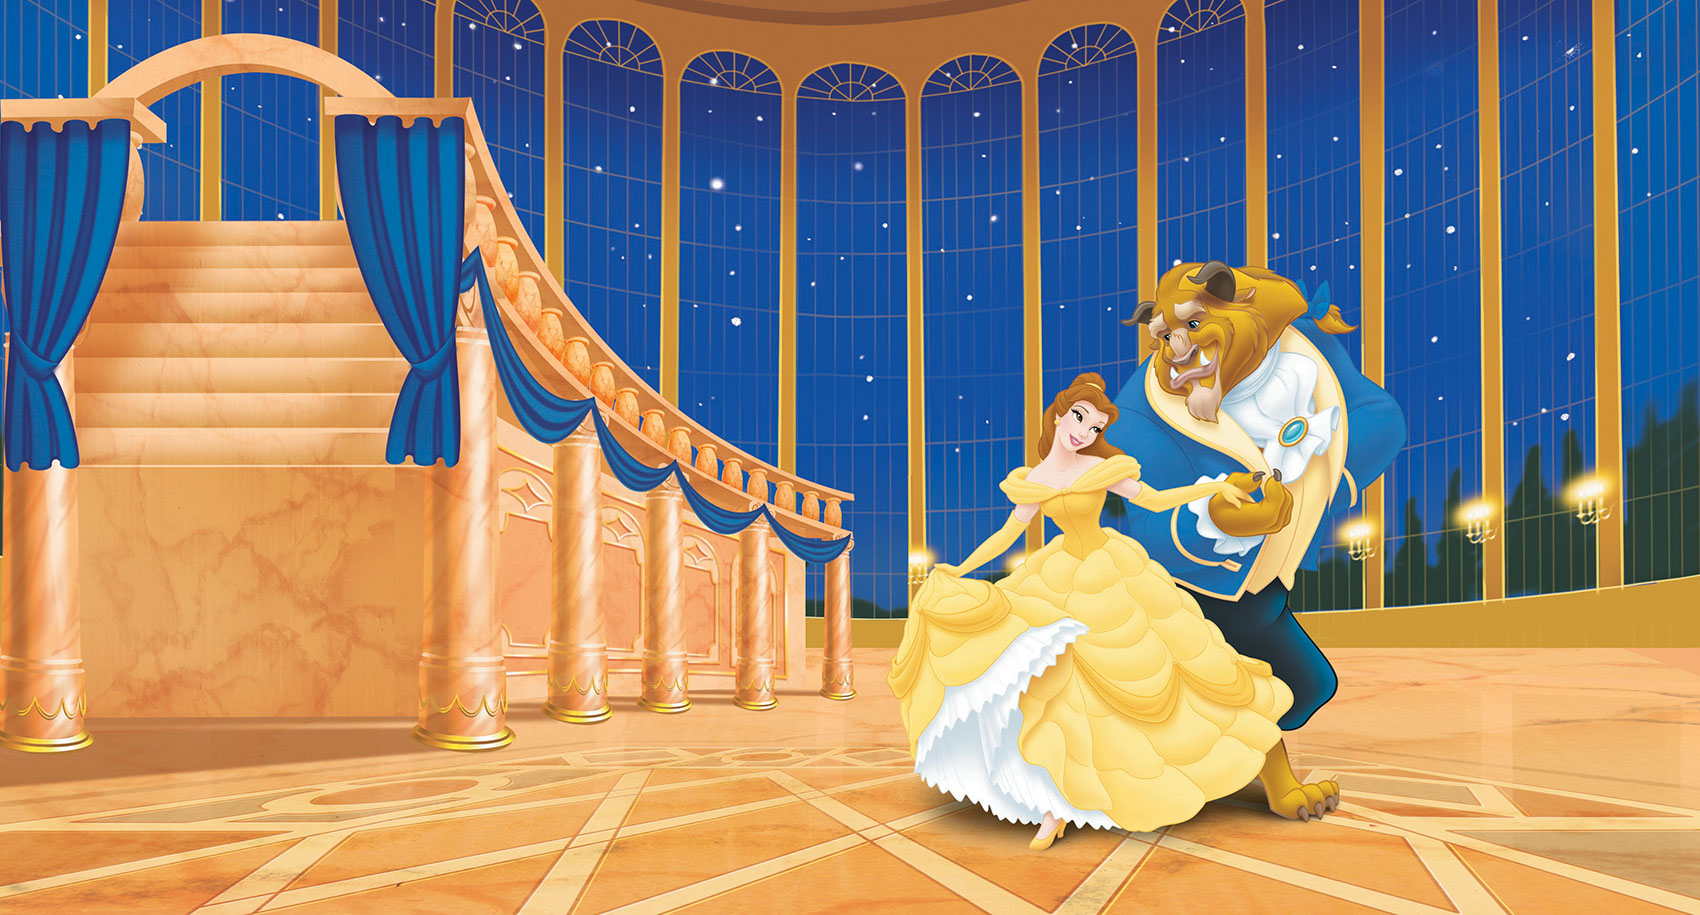 illustration-Cartoons and Characters_Belle and beast in ballroom-Shawn McKelvey